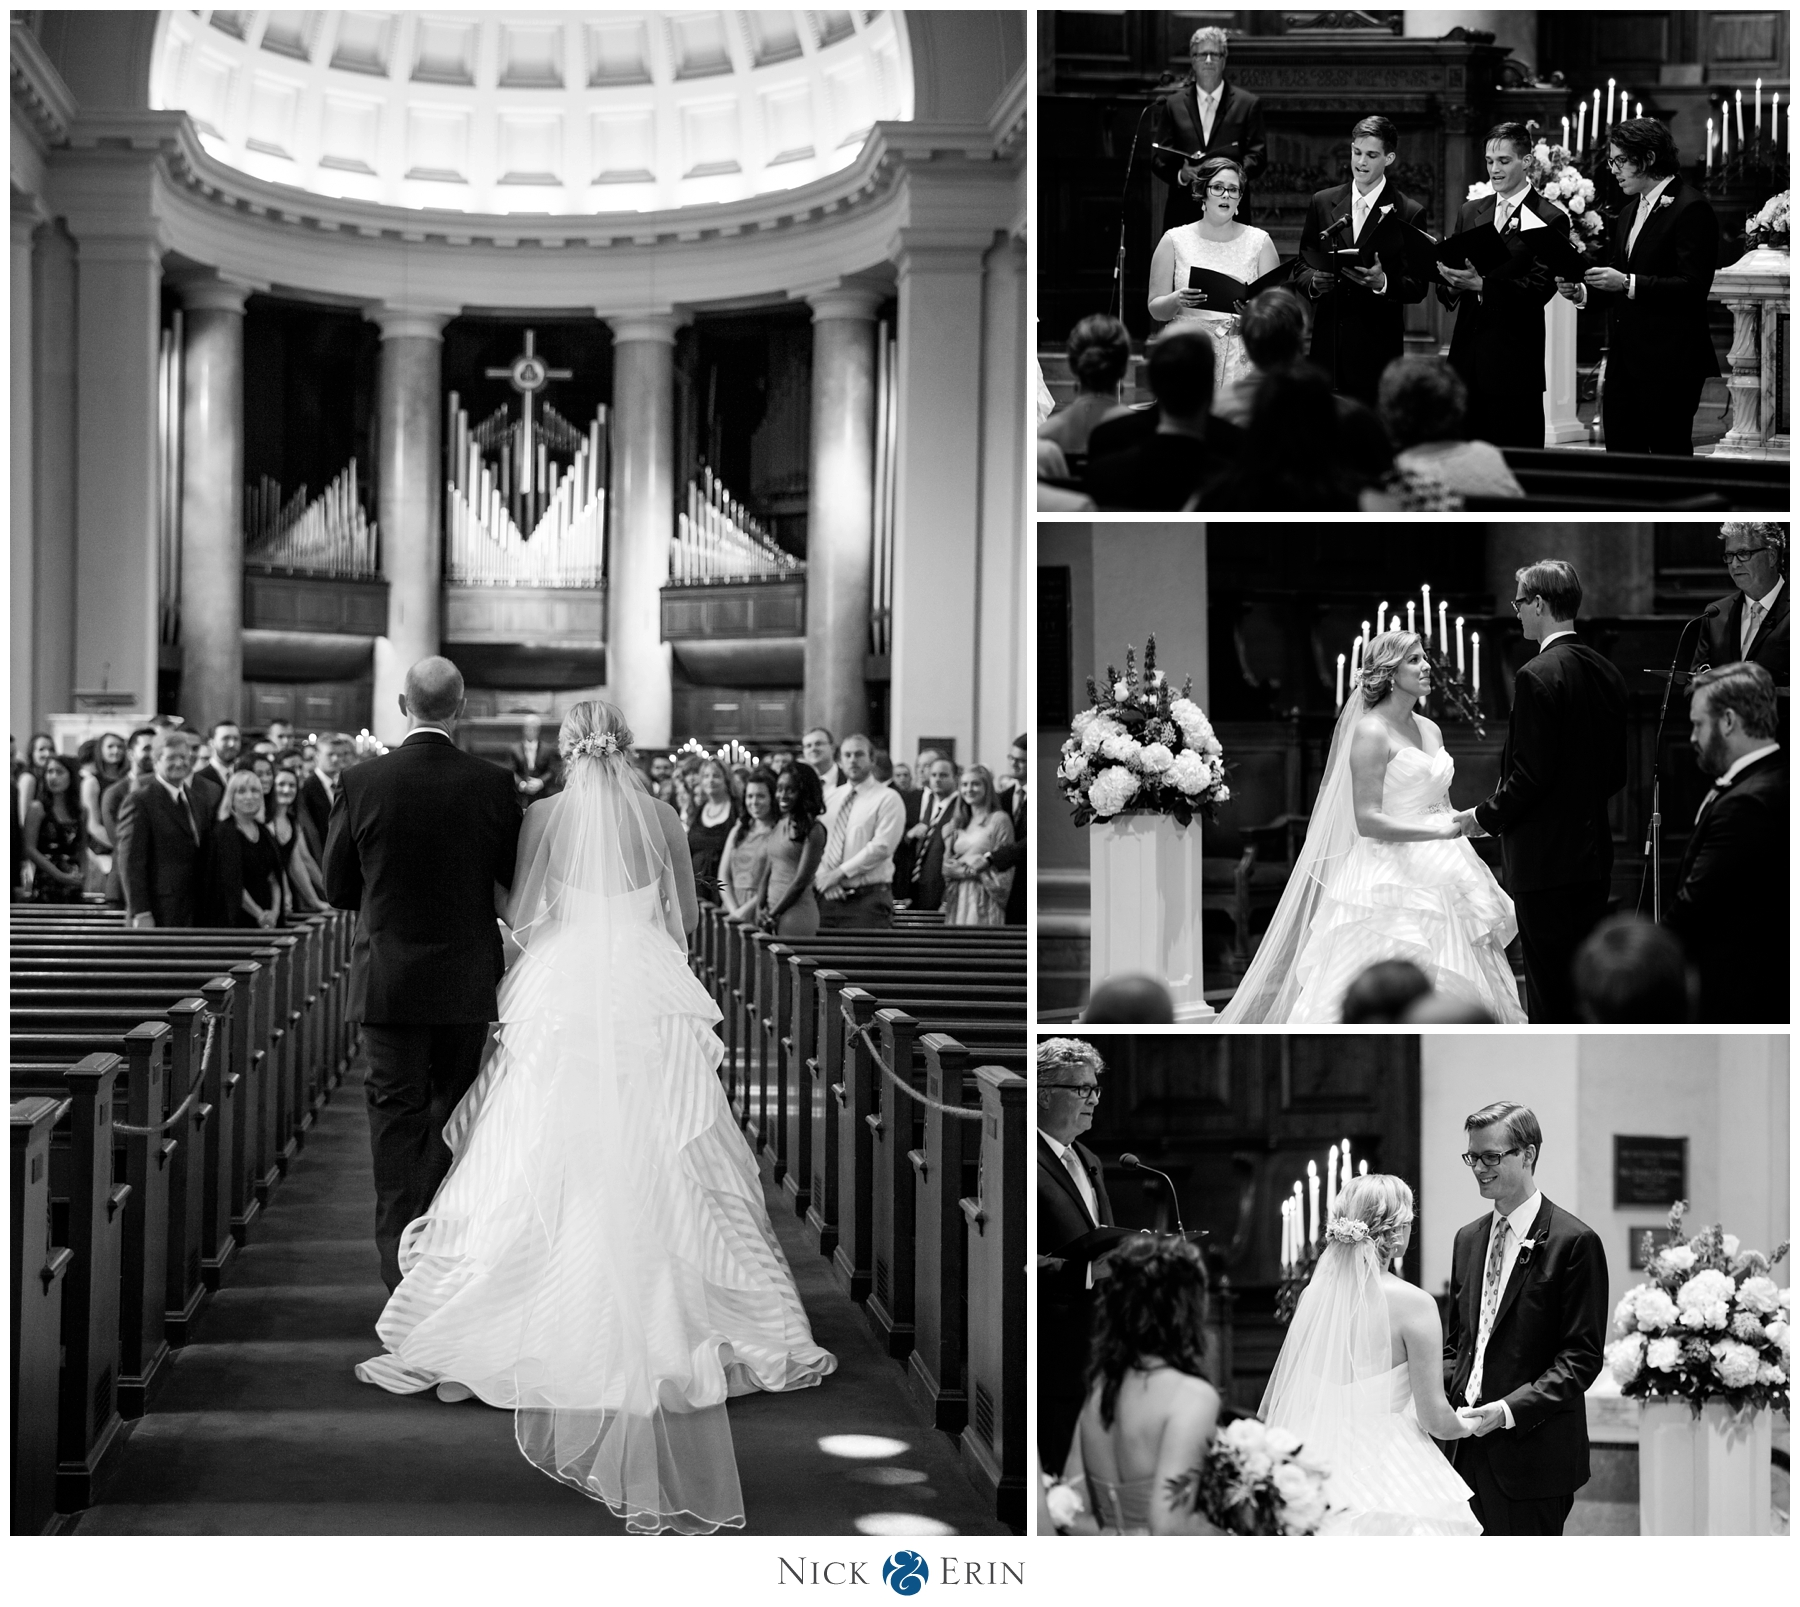 Donner_Photography_Washington DC Wedding_Rachel & Taylor_0037